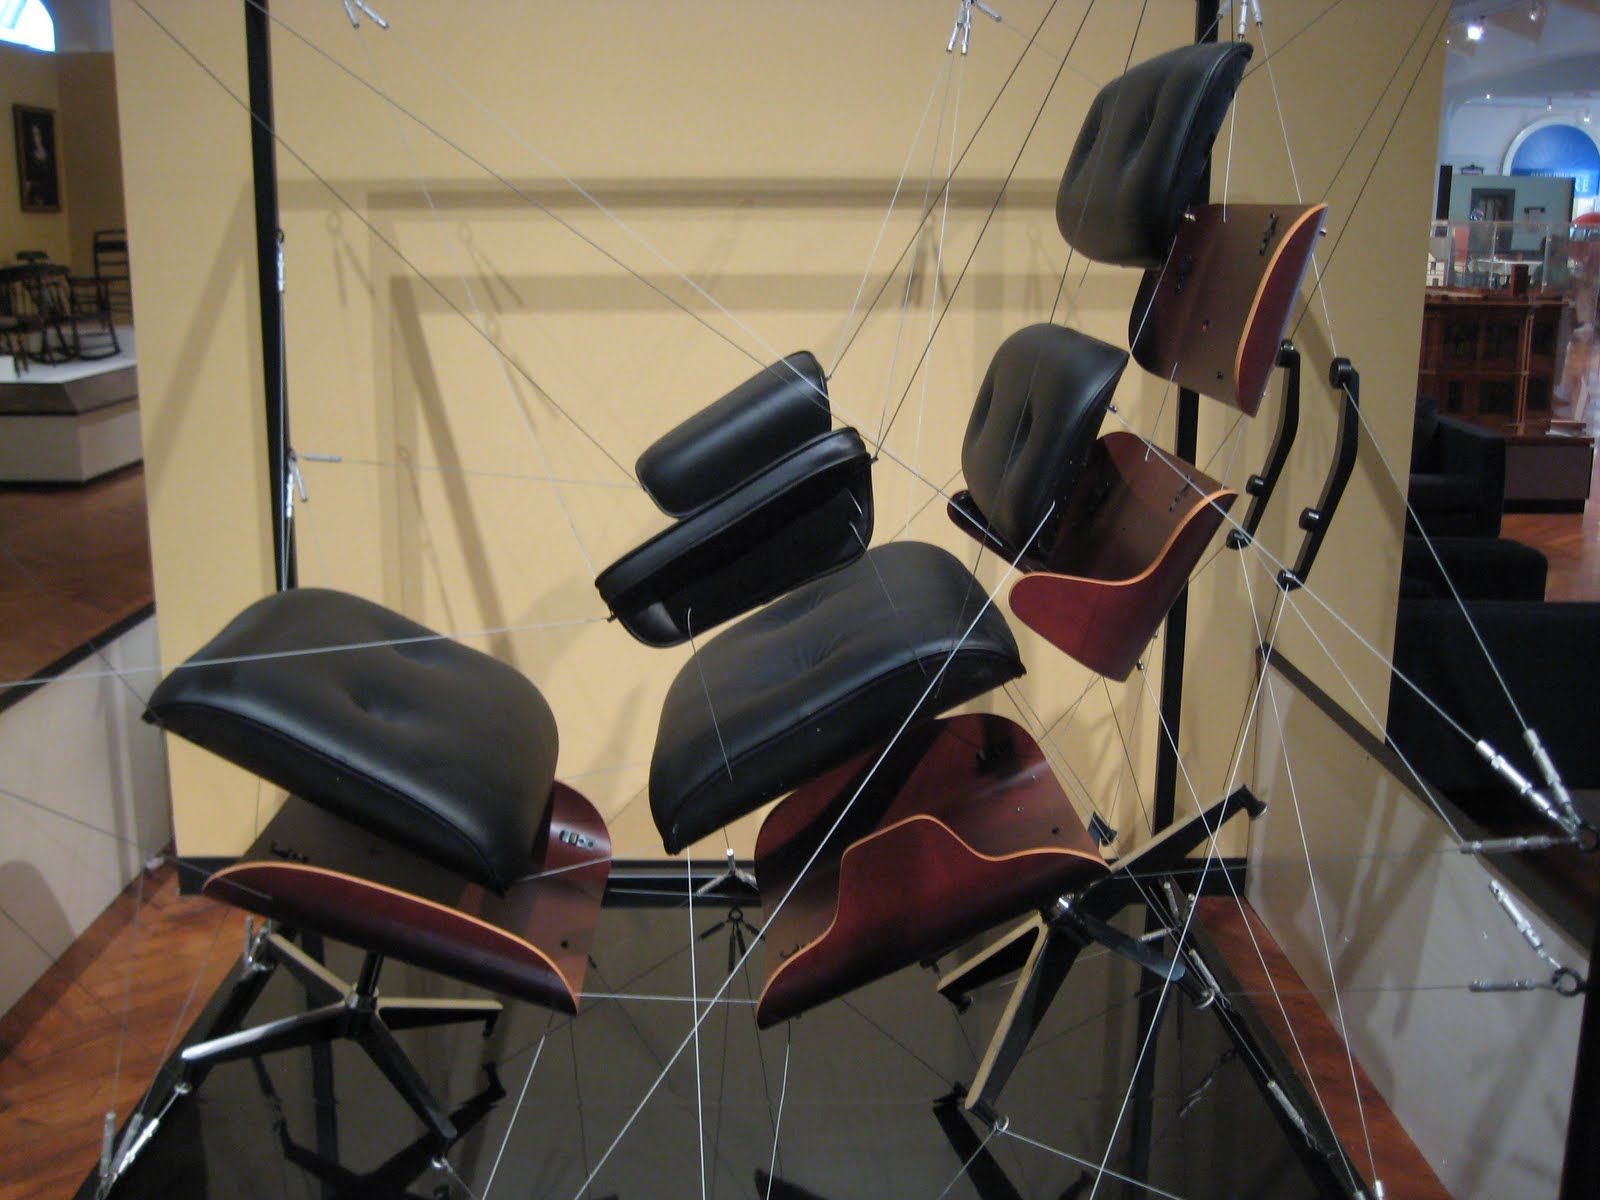 Pleasing Exploded View Of The Iconic Eames Lounge Chair Wow In Beatyapartments Chair Design Images Beatyapartmentscom